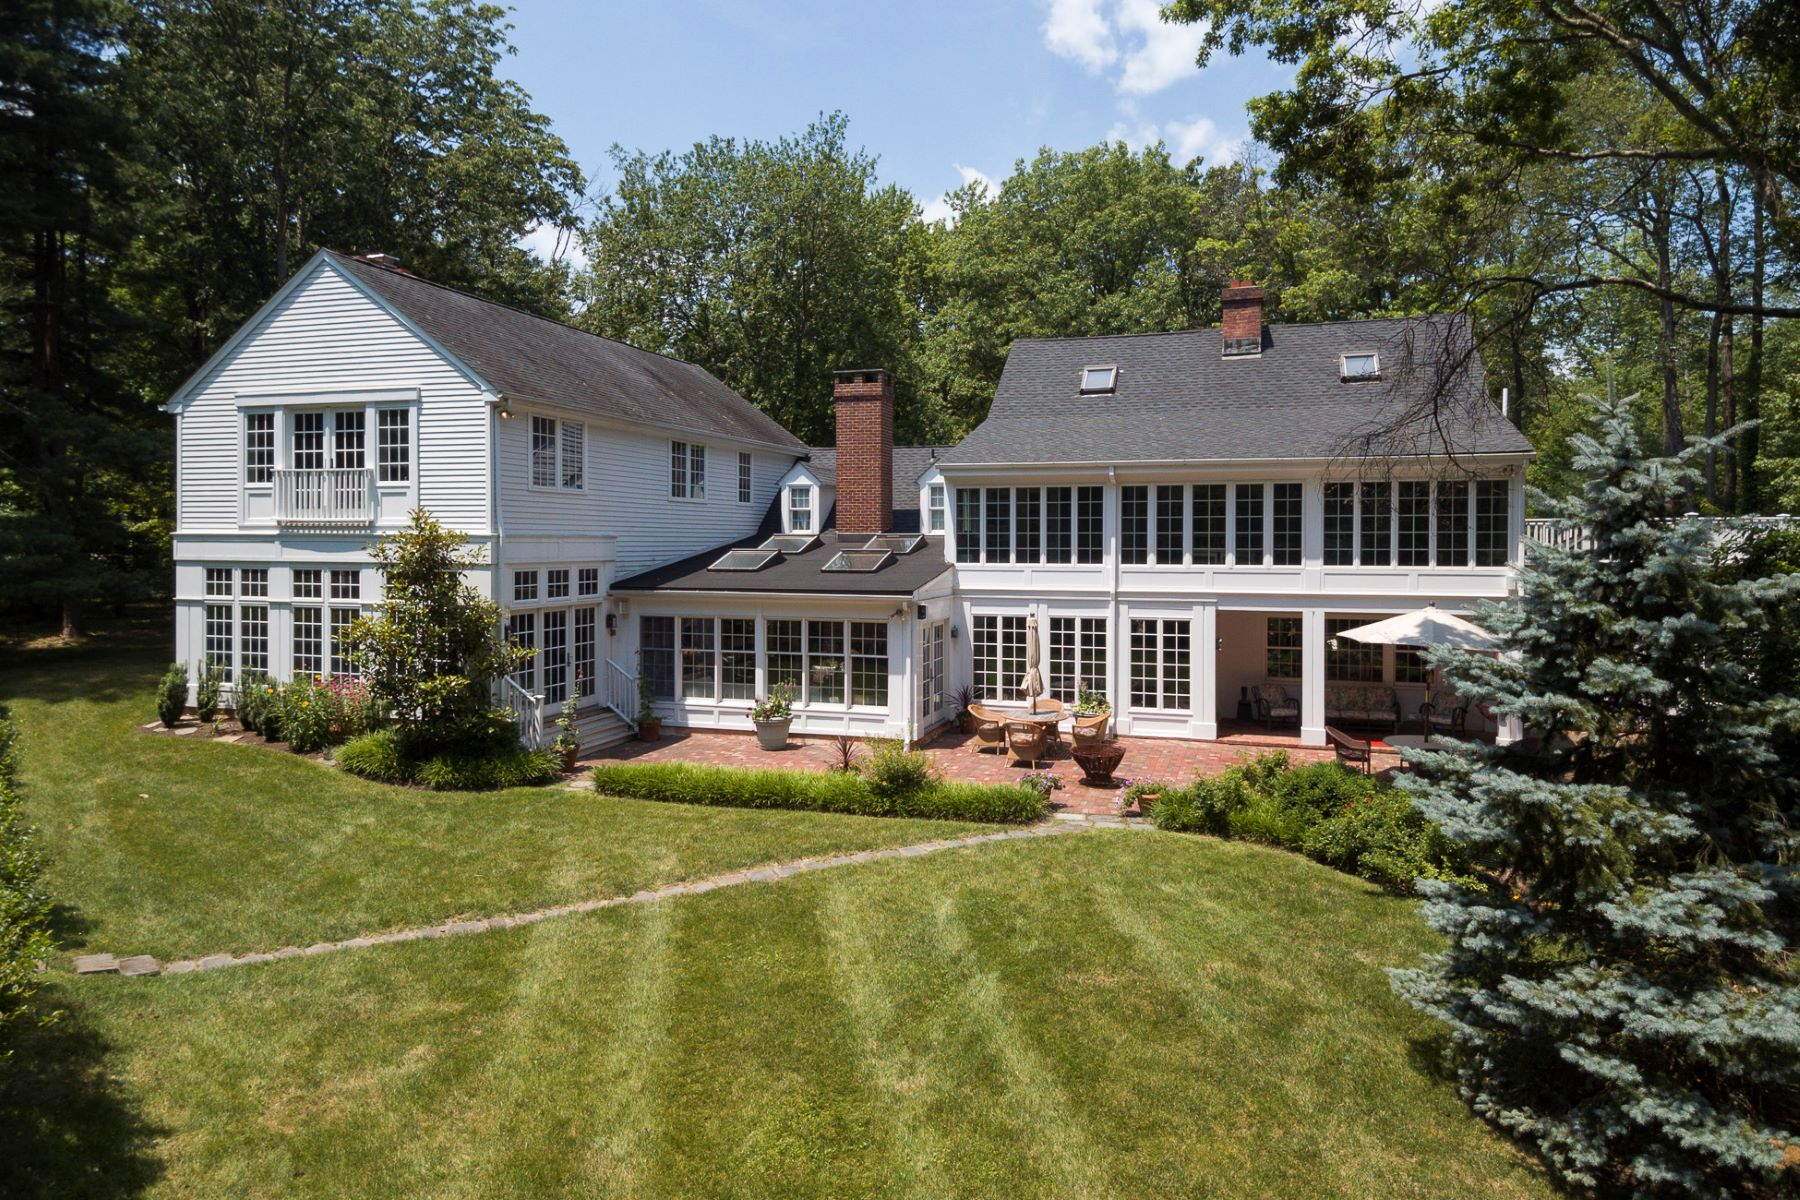 House for Sale at Authentic Details Curated From Around the Globe 60 Pheasant Hill Road Princeton, New Jersey 08540 United StatesIn/Around: Princeton